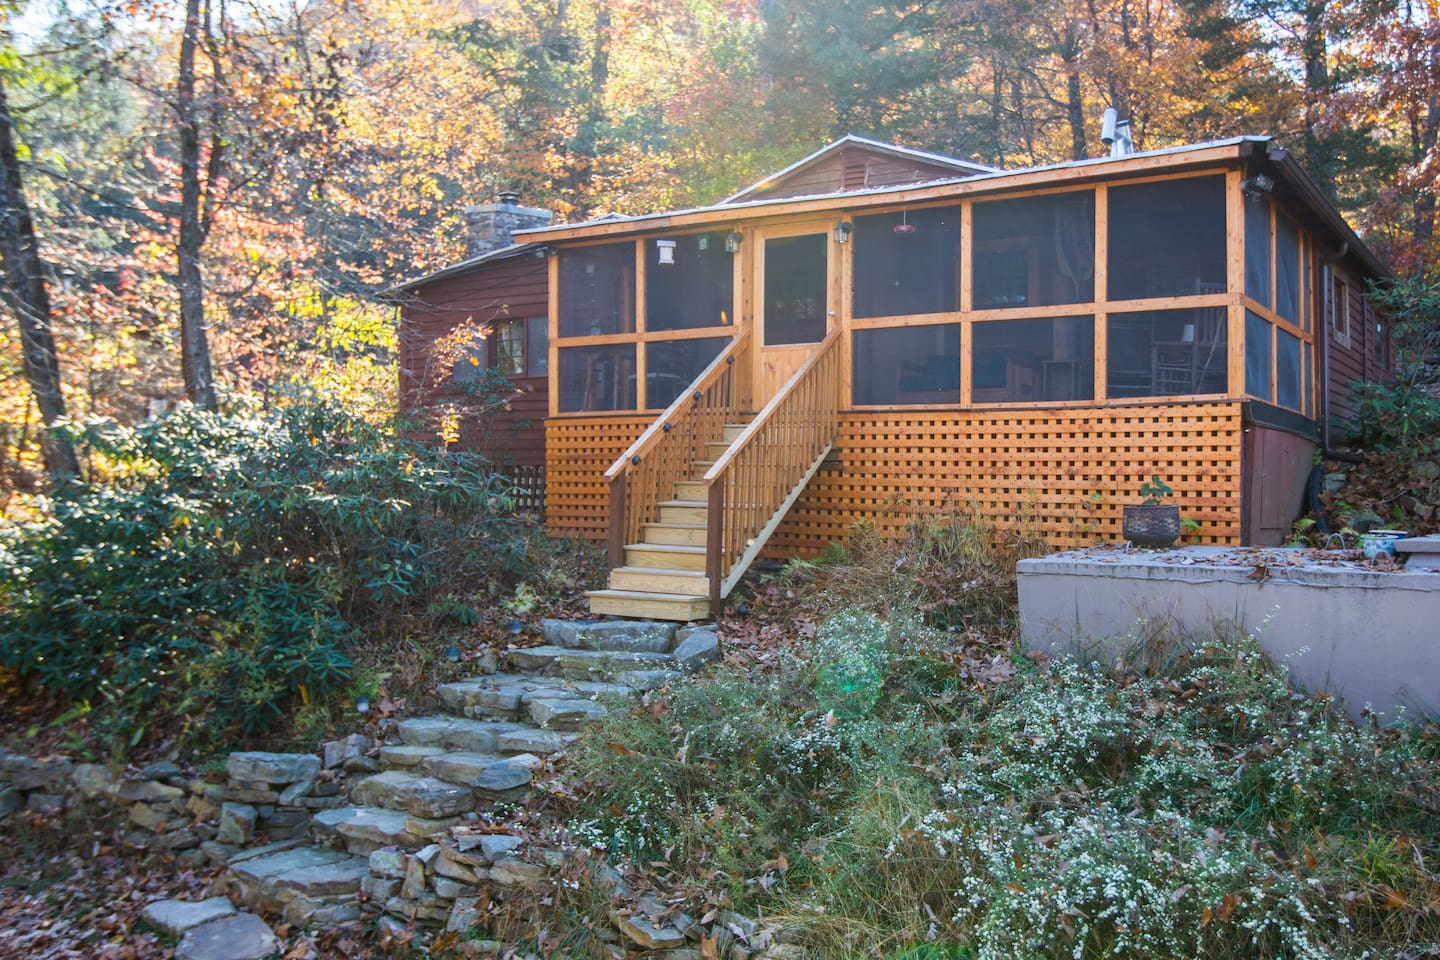 Front View of Dry River Cabin on an Autumn afternoon.